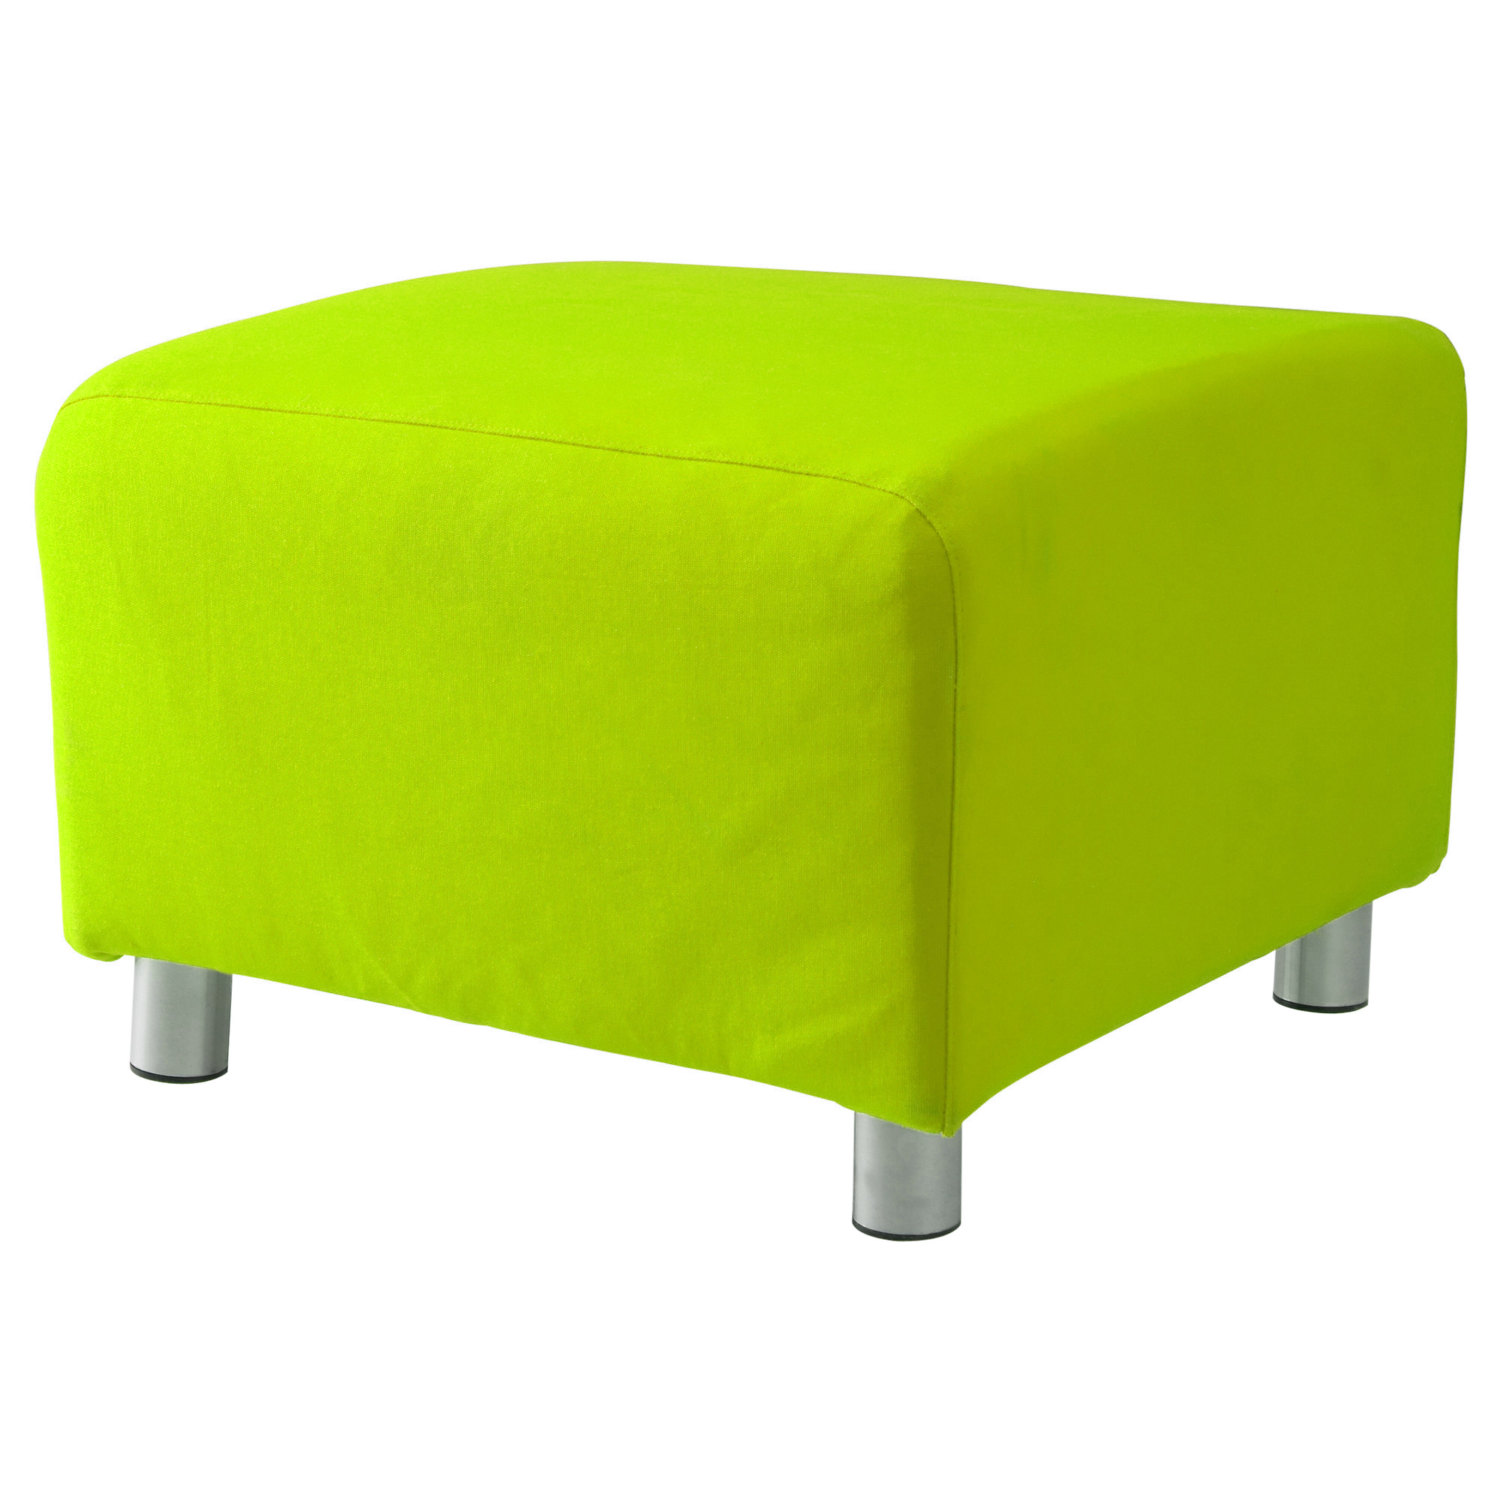 Custom Slip Cover for Ikea Klippan Footstool 100% Cotton Sofa